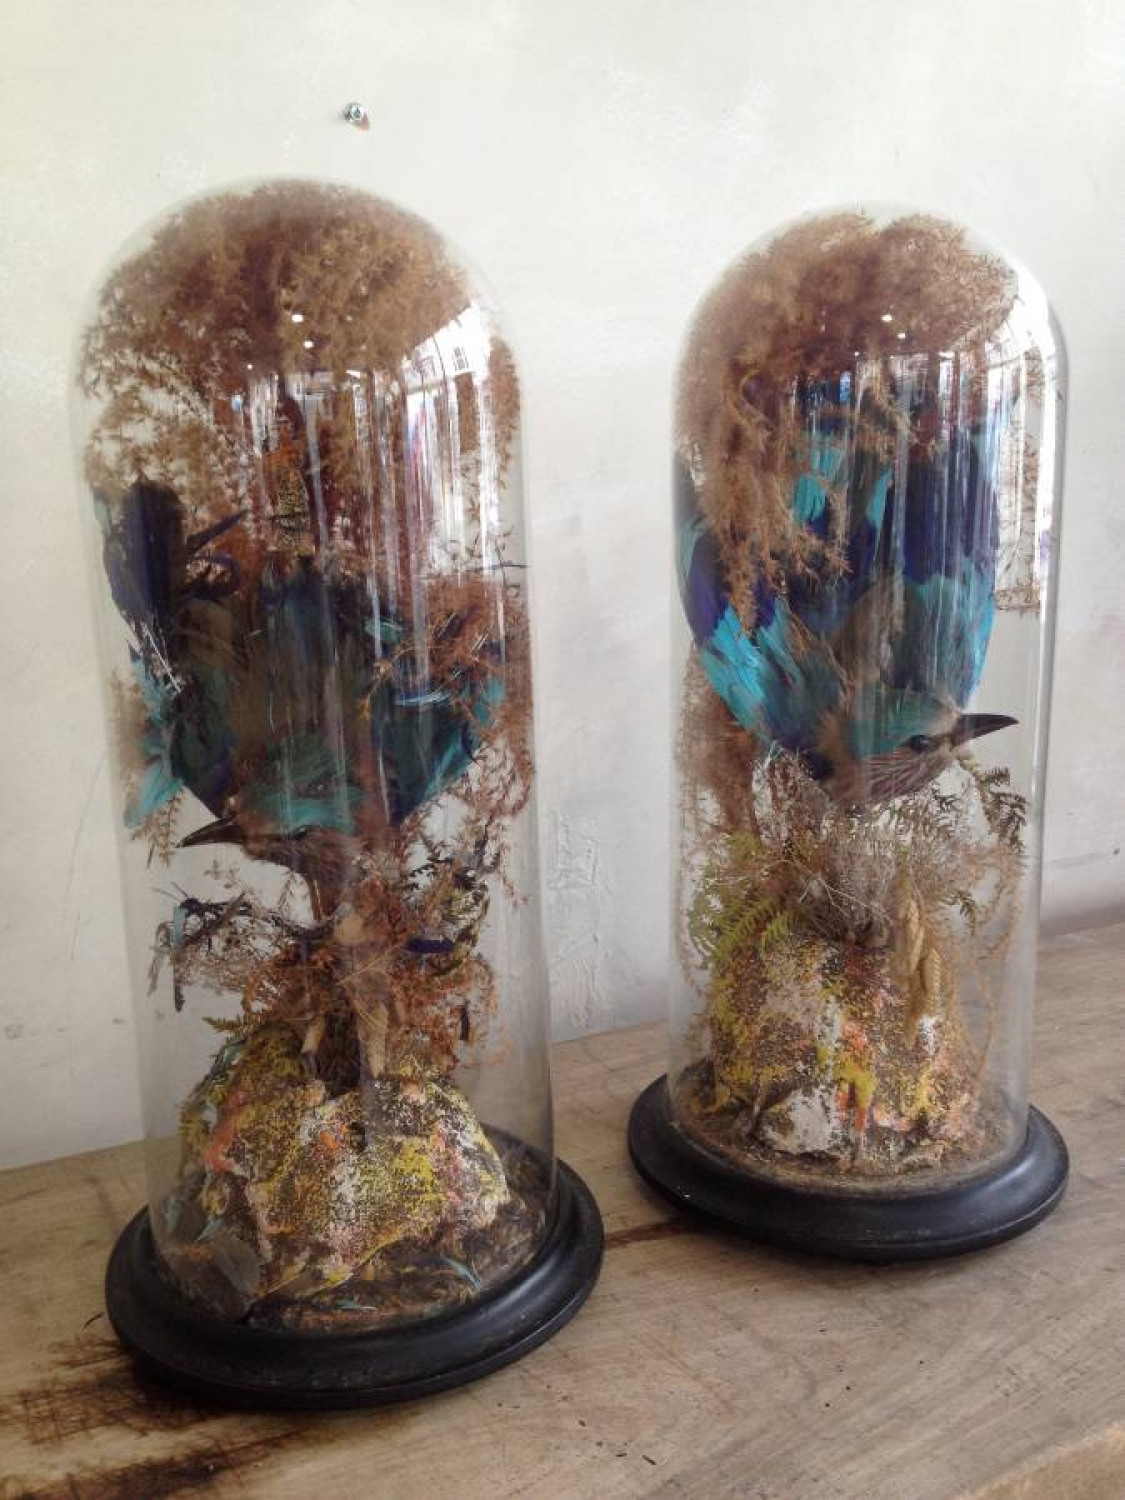 Pair of  Taxidermy birds in glass domes